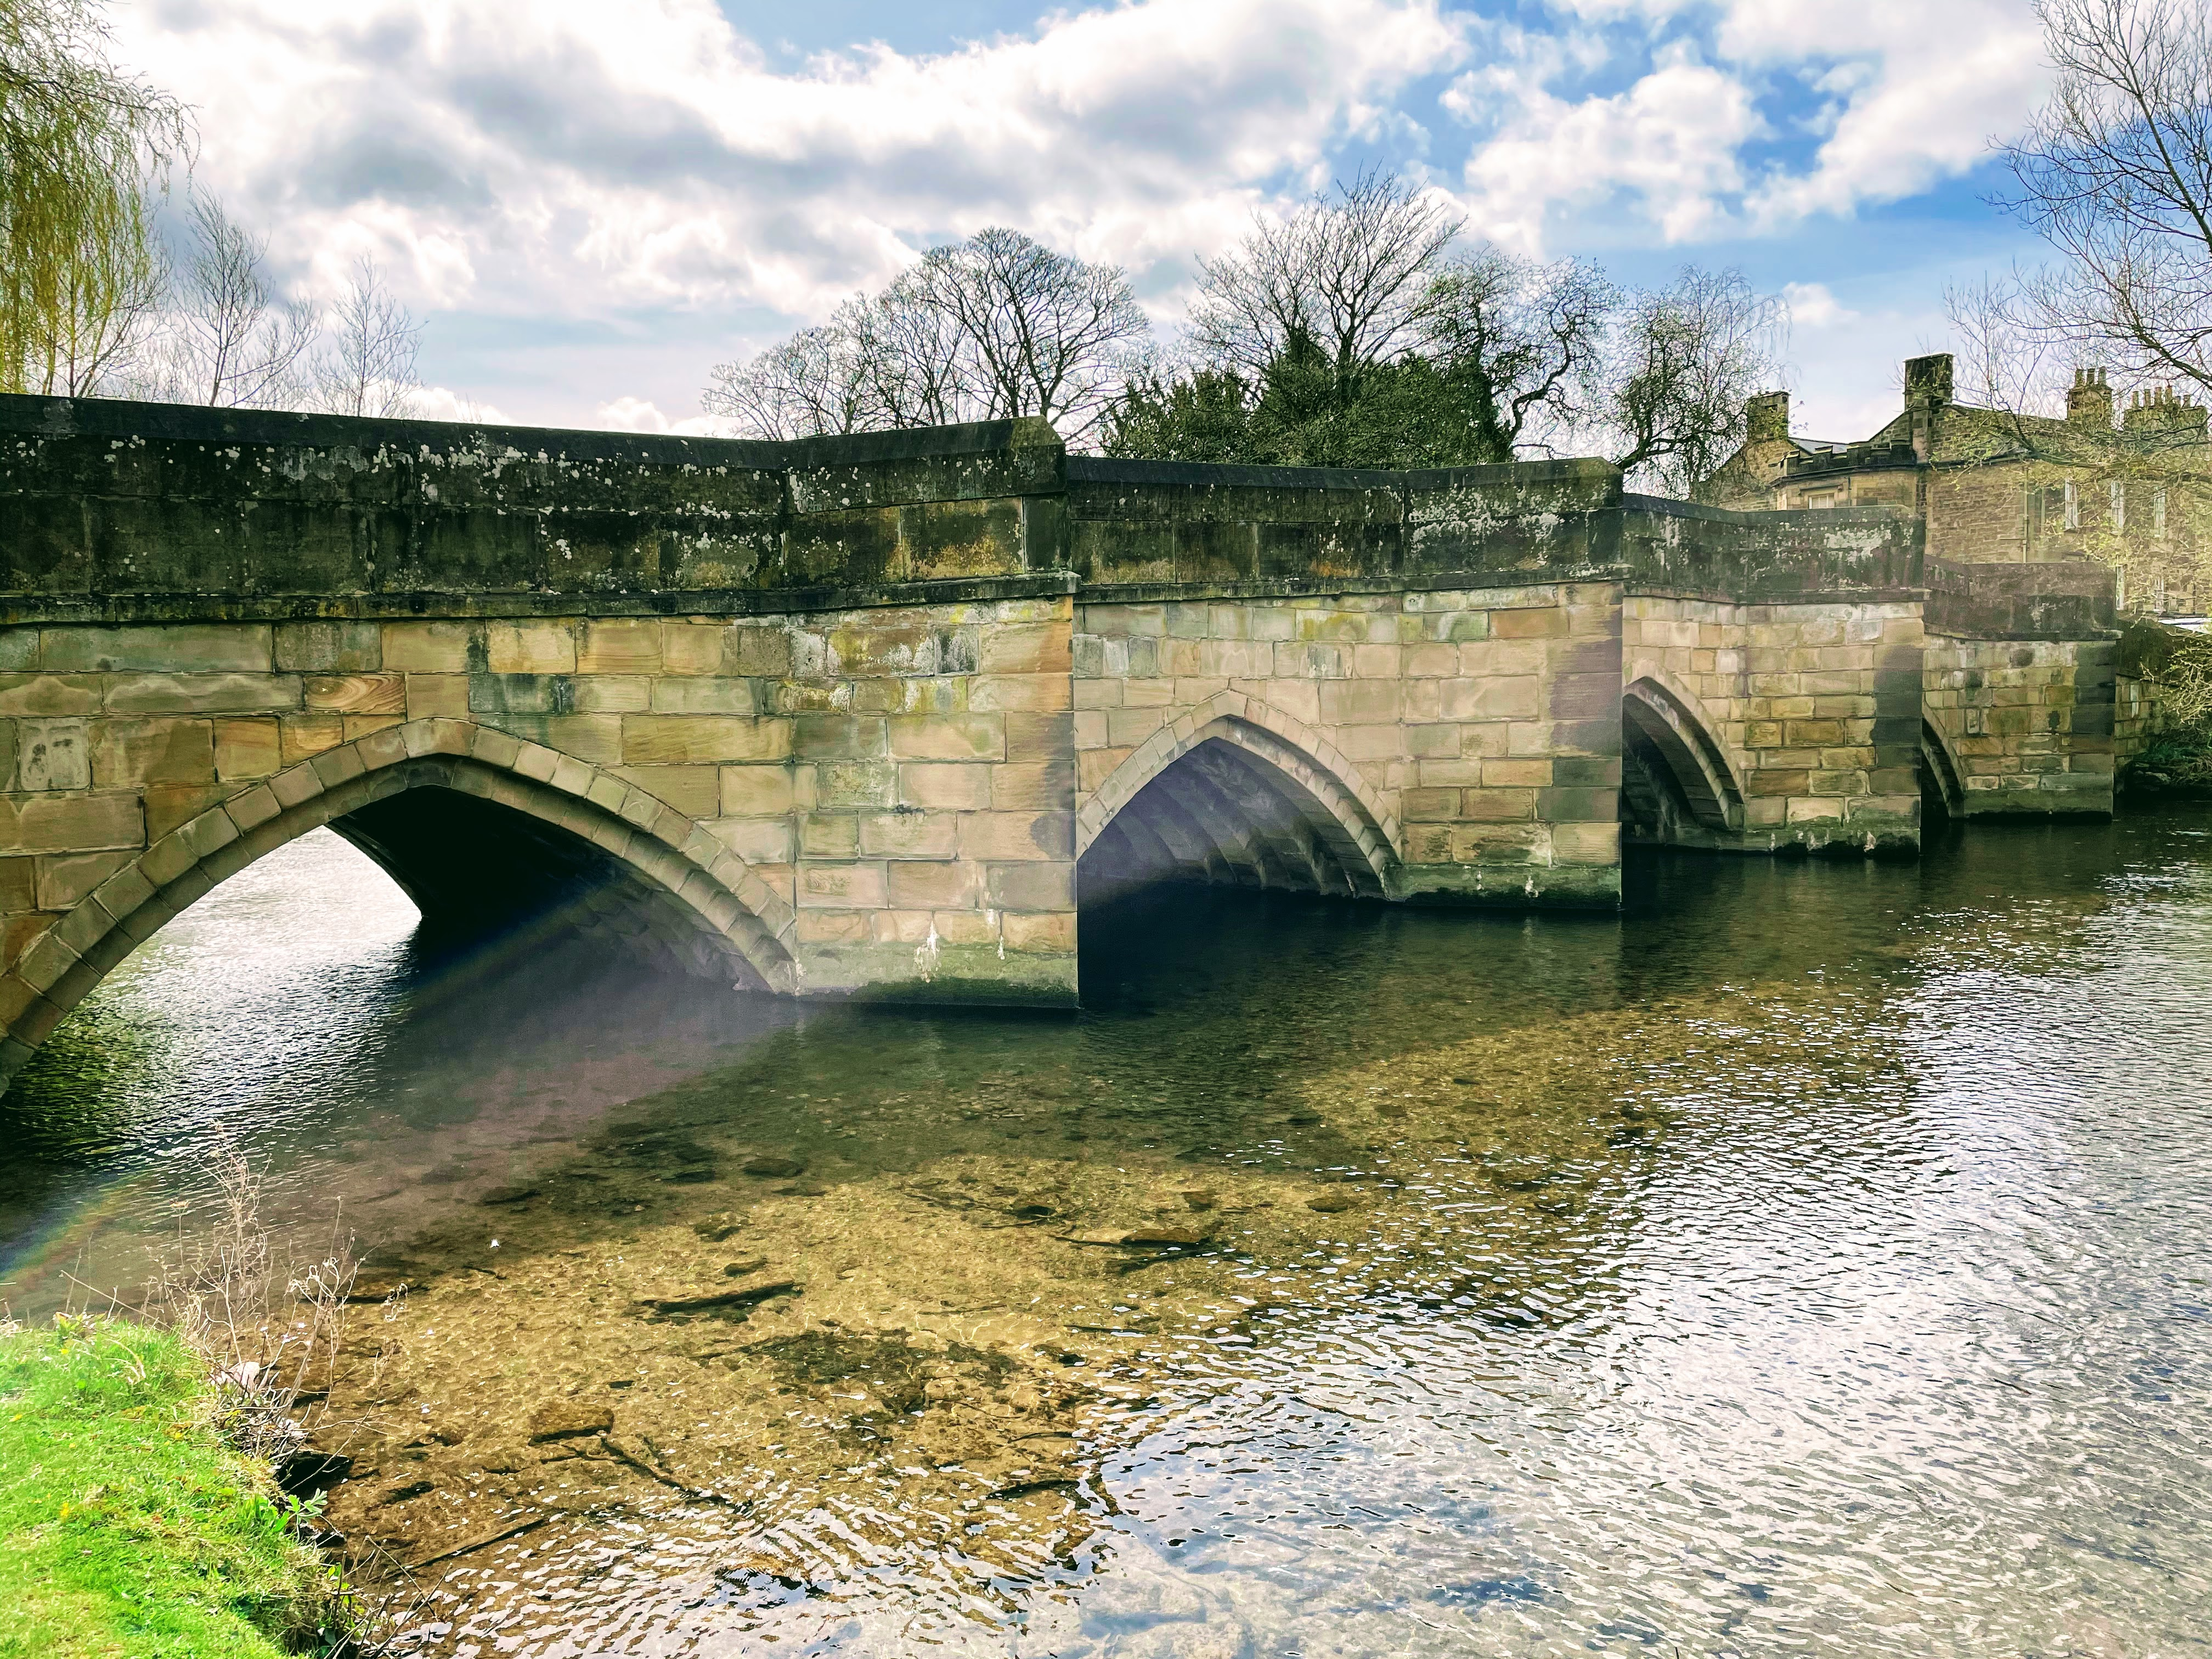 A Day Out In Derbyshire Has To Include Bakewell